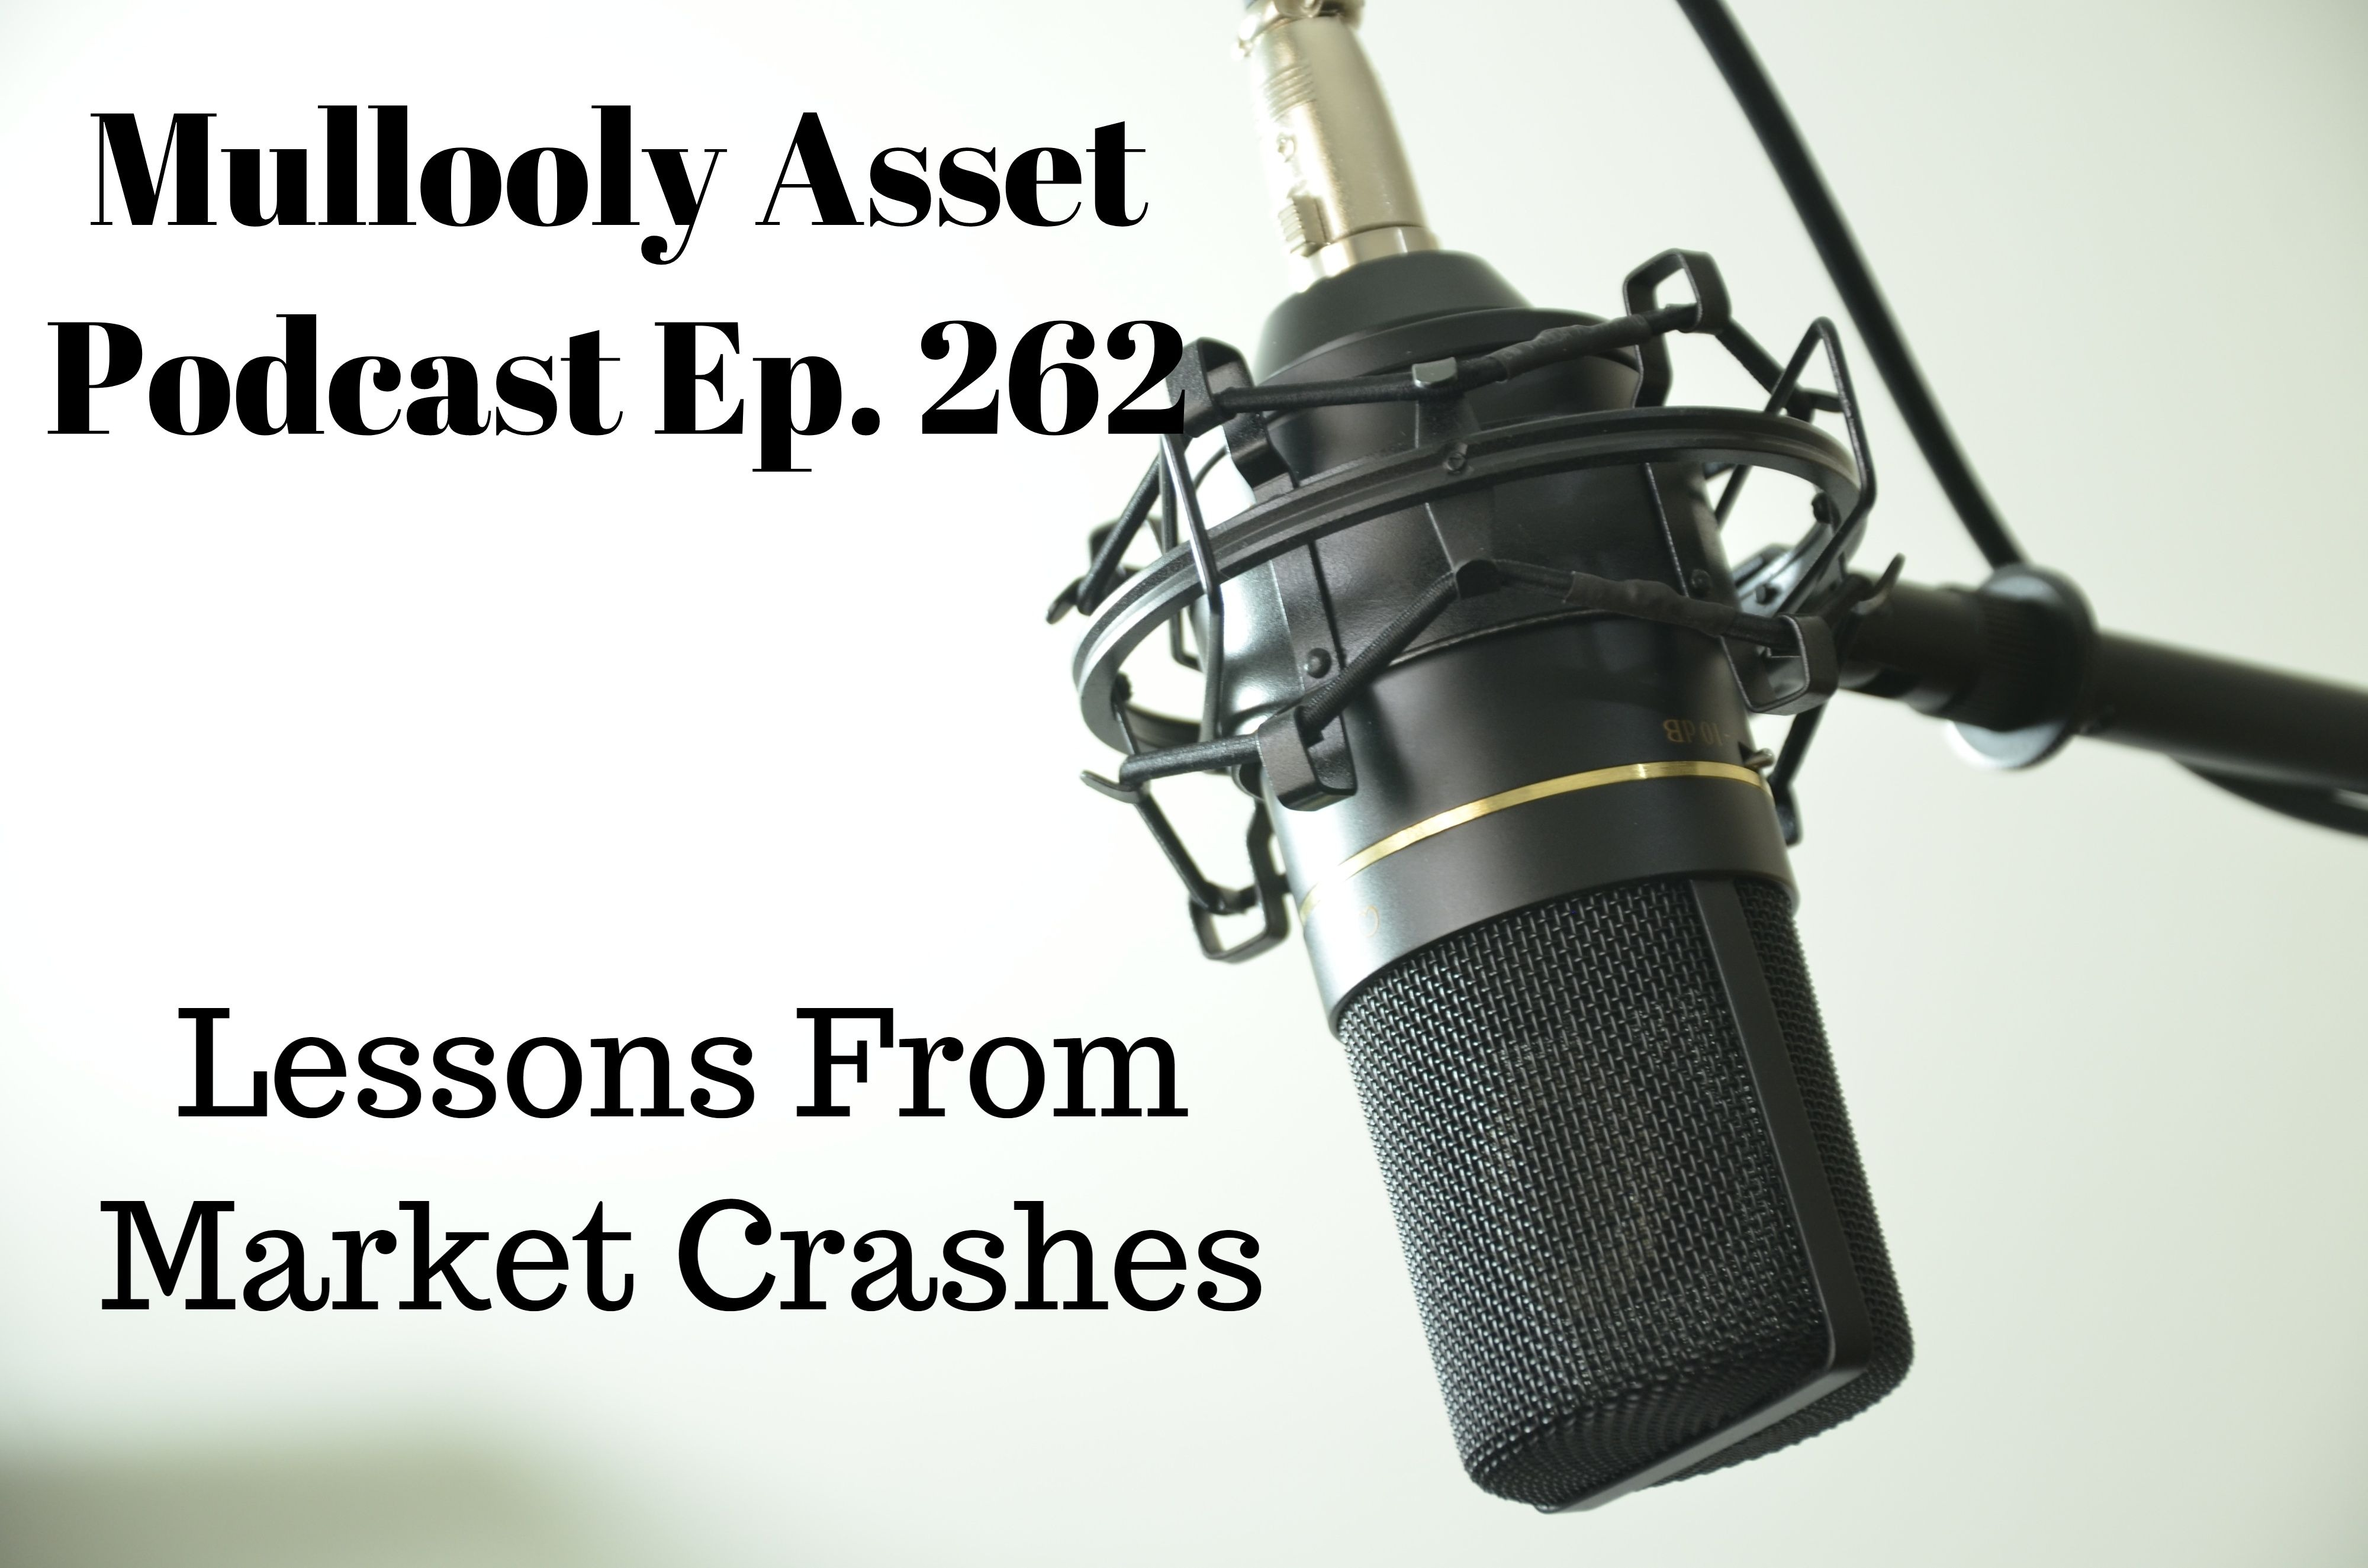 Lessons From Market Crashes